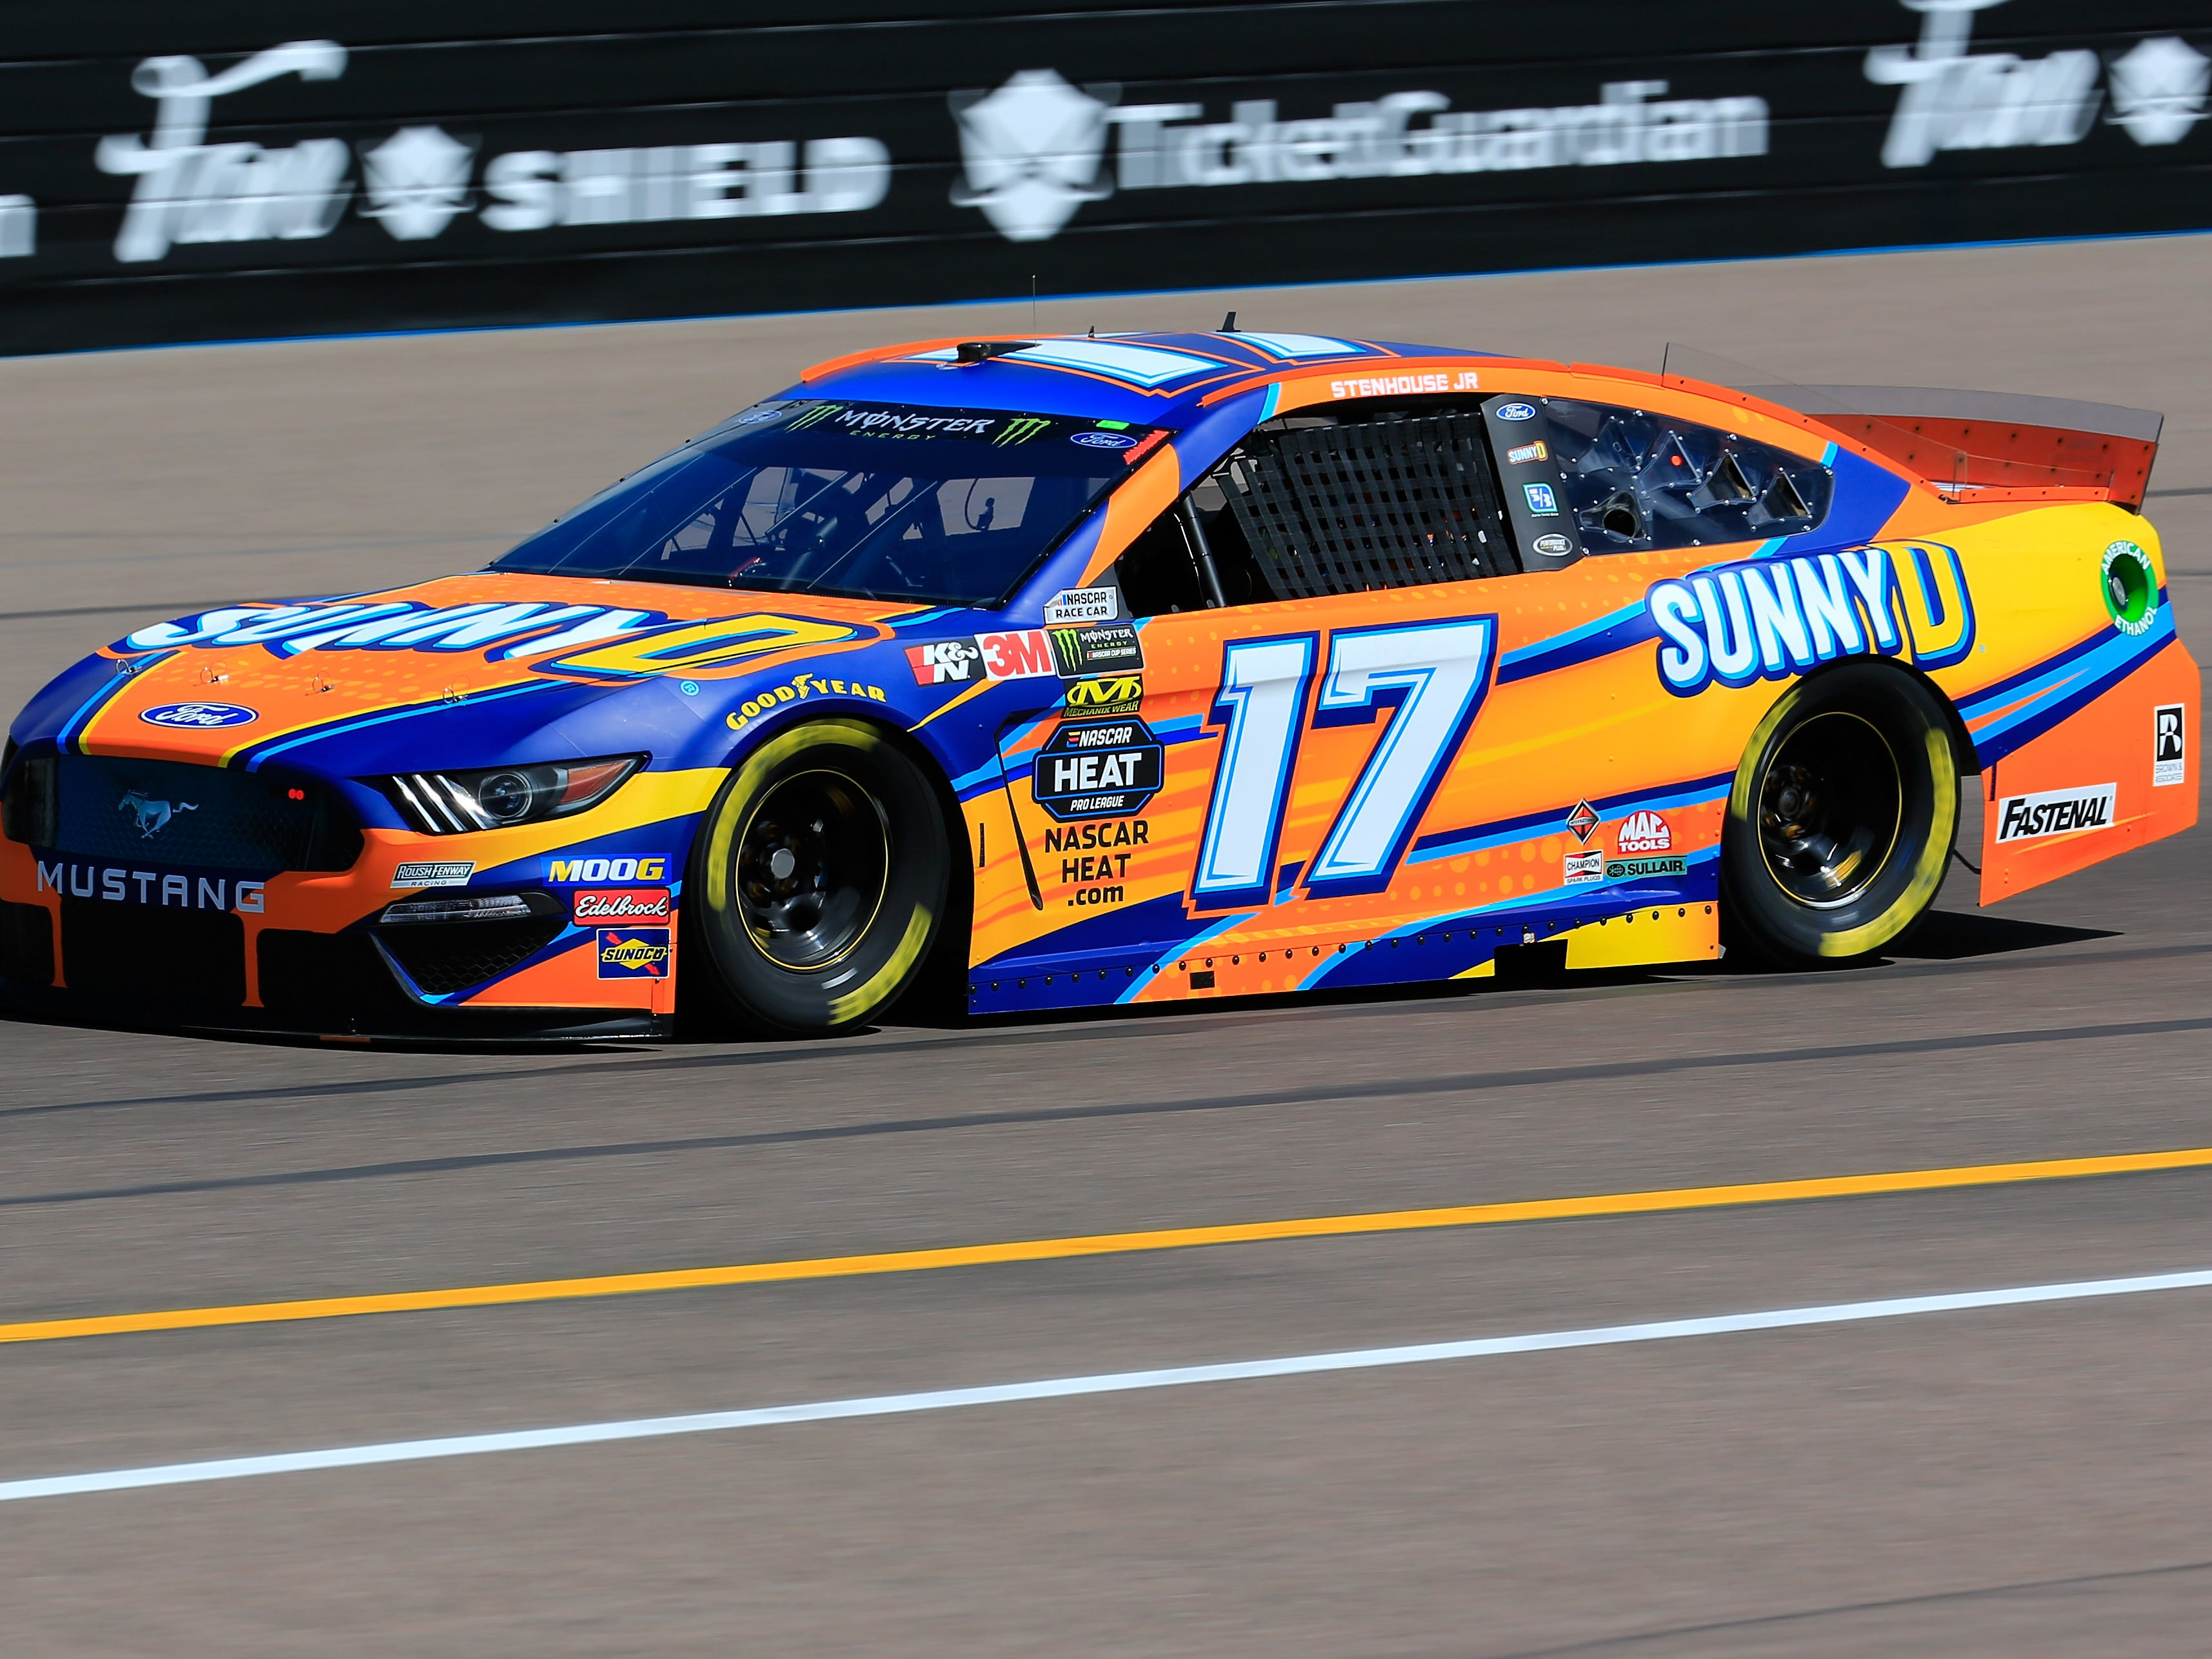 AVONDALE, AZ - MARCH 08: Ricky Stenhouse Jr., driver of the #17 Sunny D Ford, practices for the Monster Energy NASCAR Cup Series TicketGuardian 500 at ISM Raceway on March 8, 2019 in Avondale, Arizona.